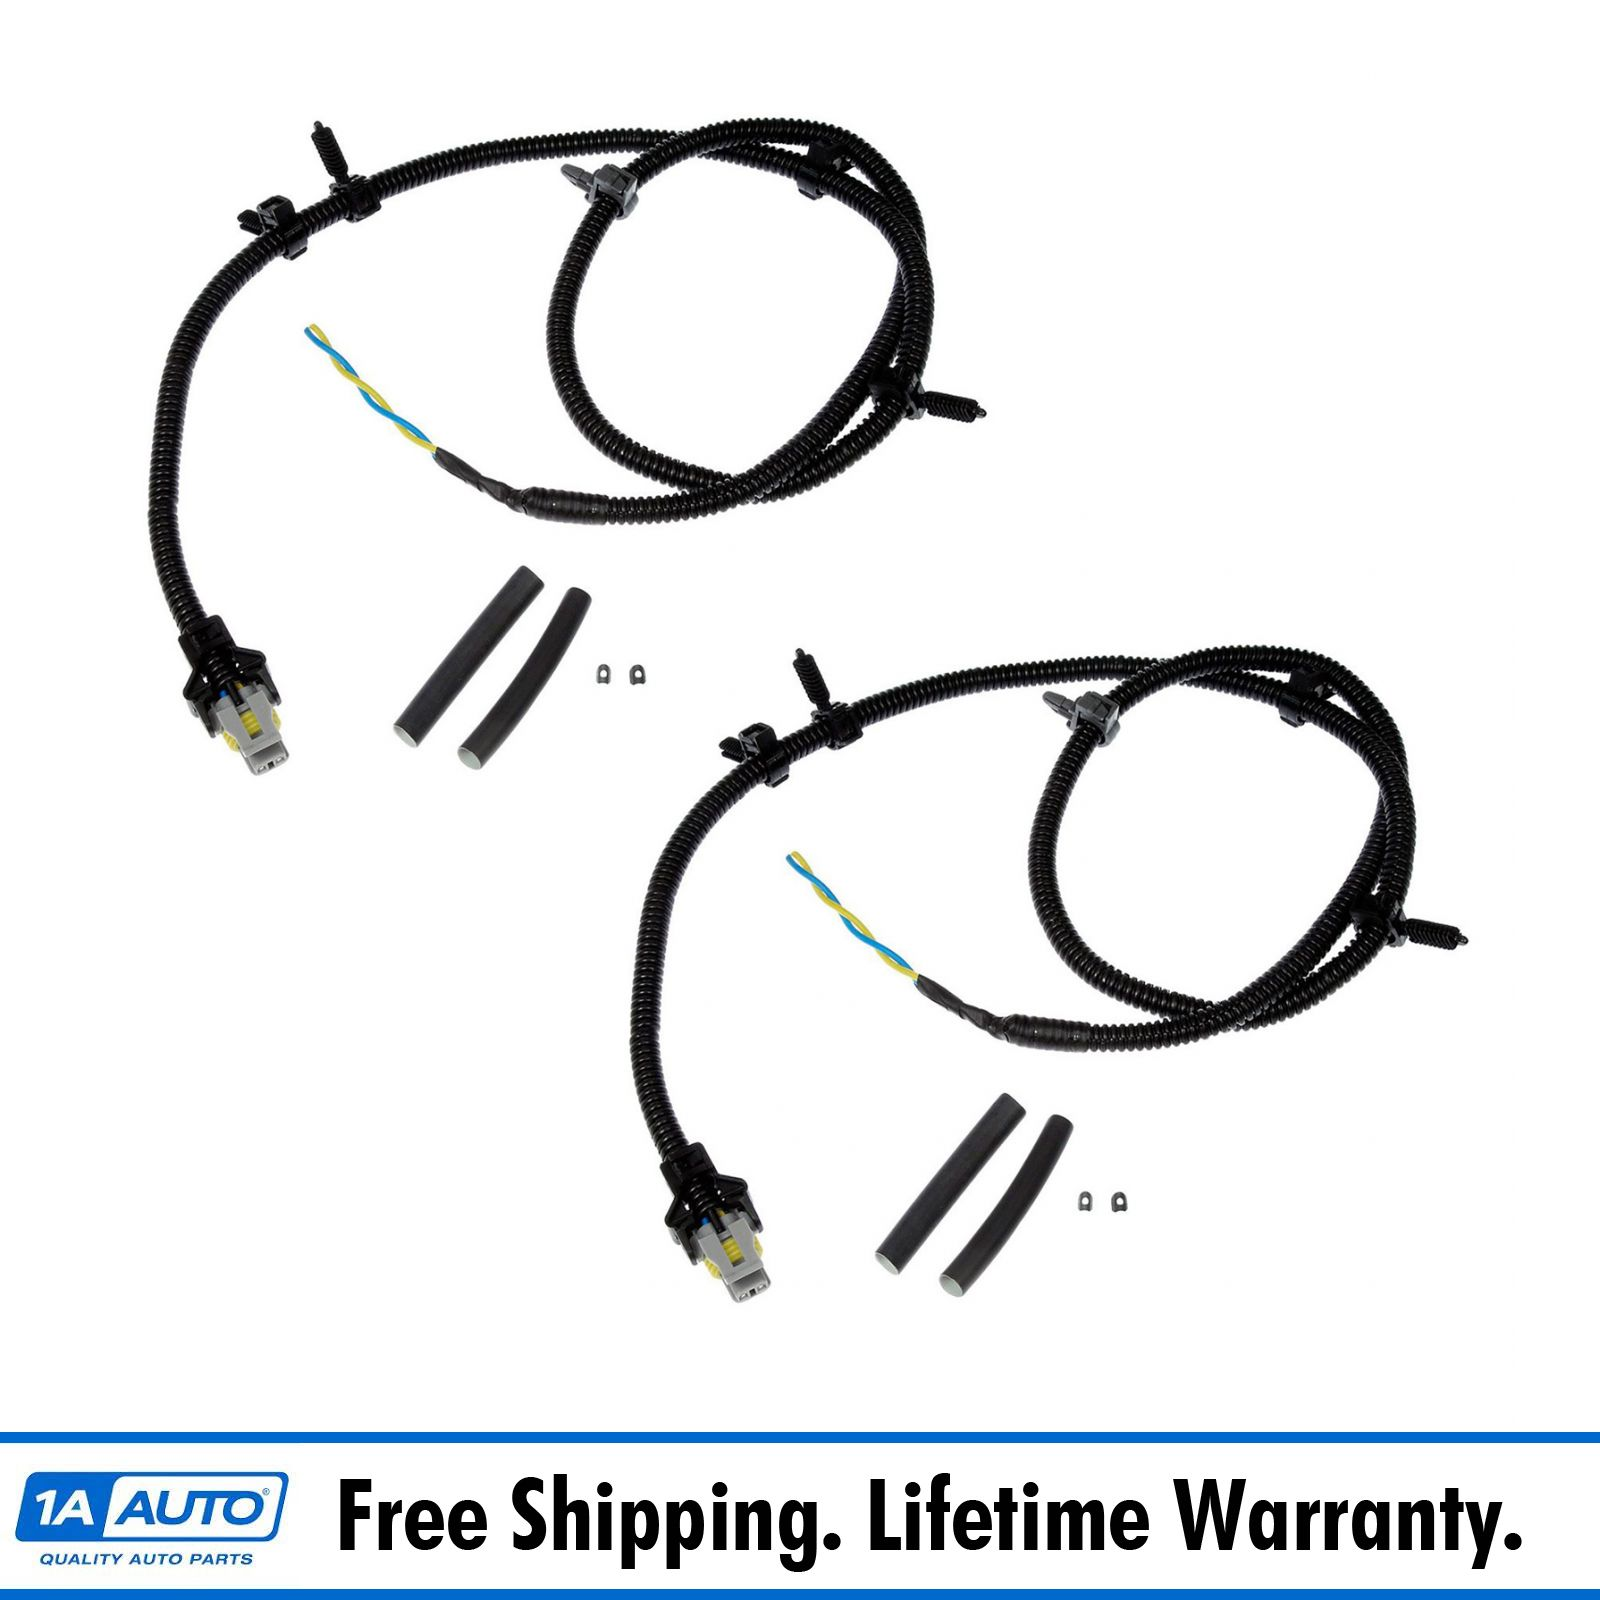 Details about ABS Sensor Wire Harness Front LH RH Pair for Buick Cadillac on